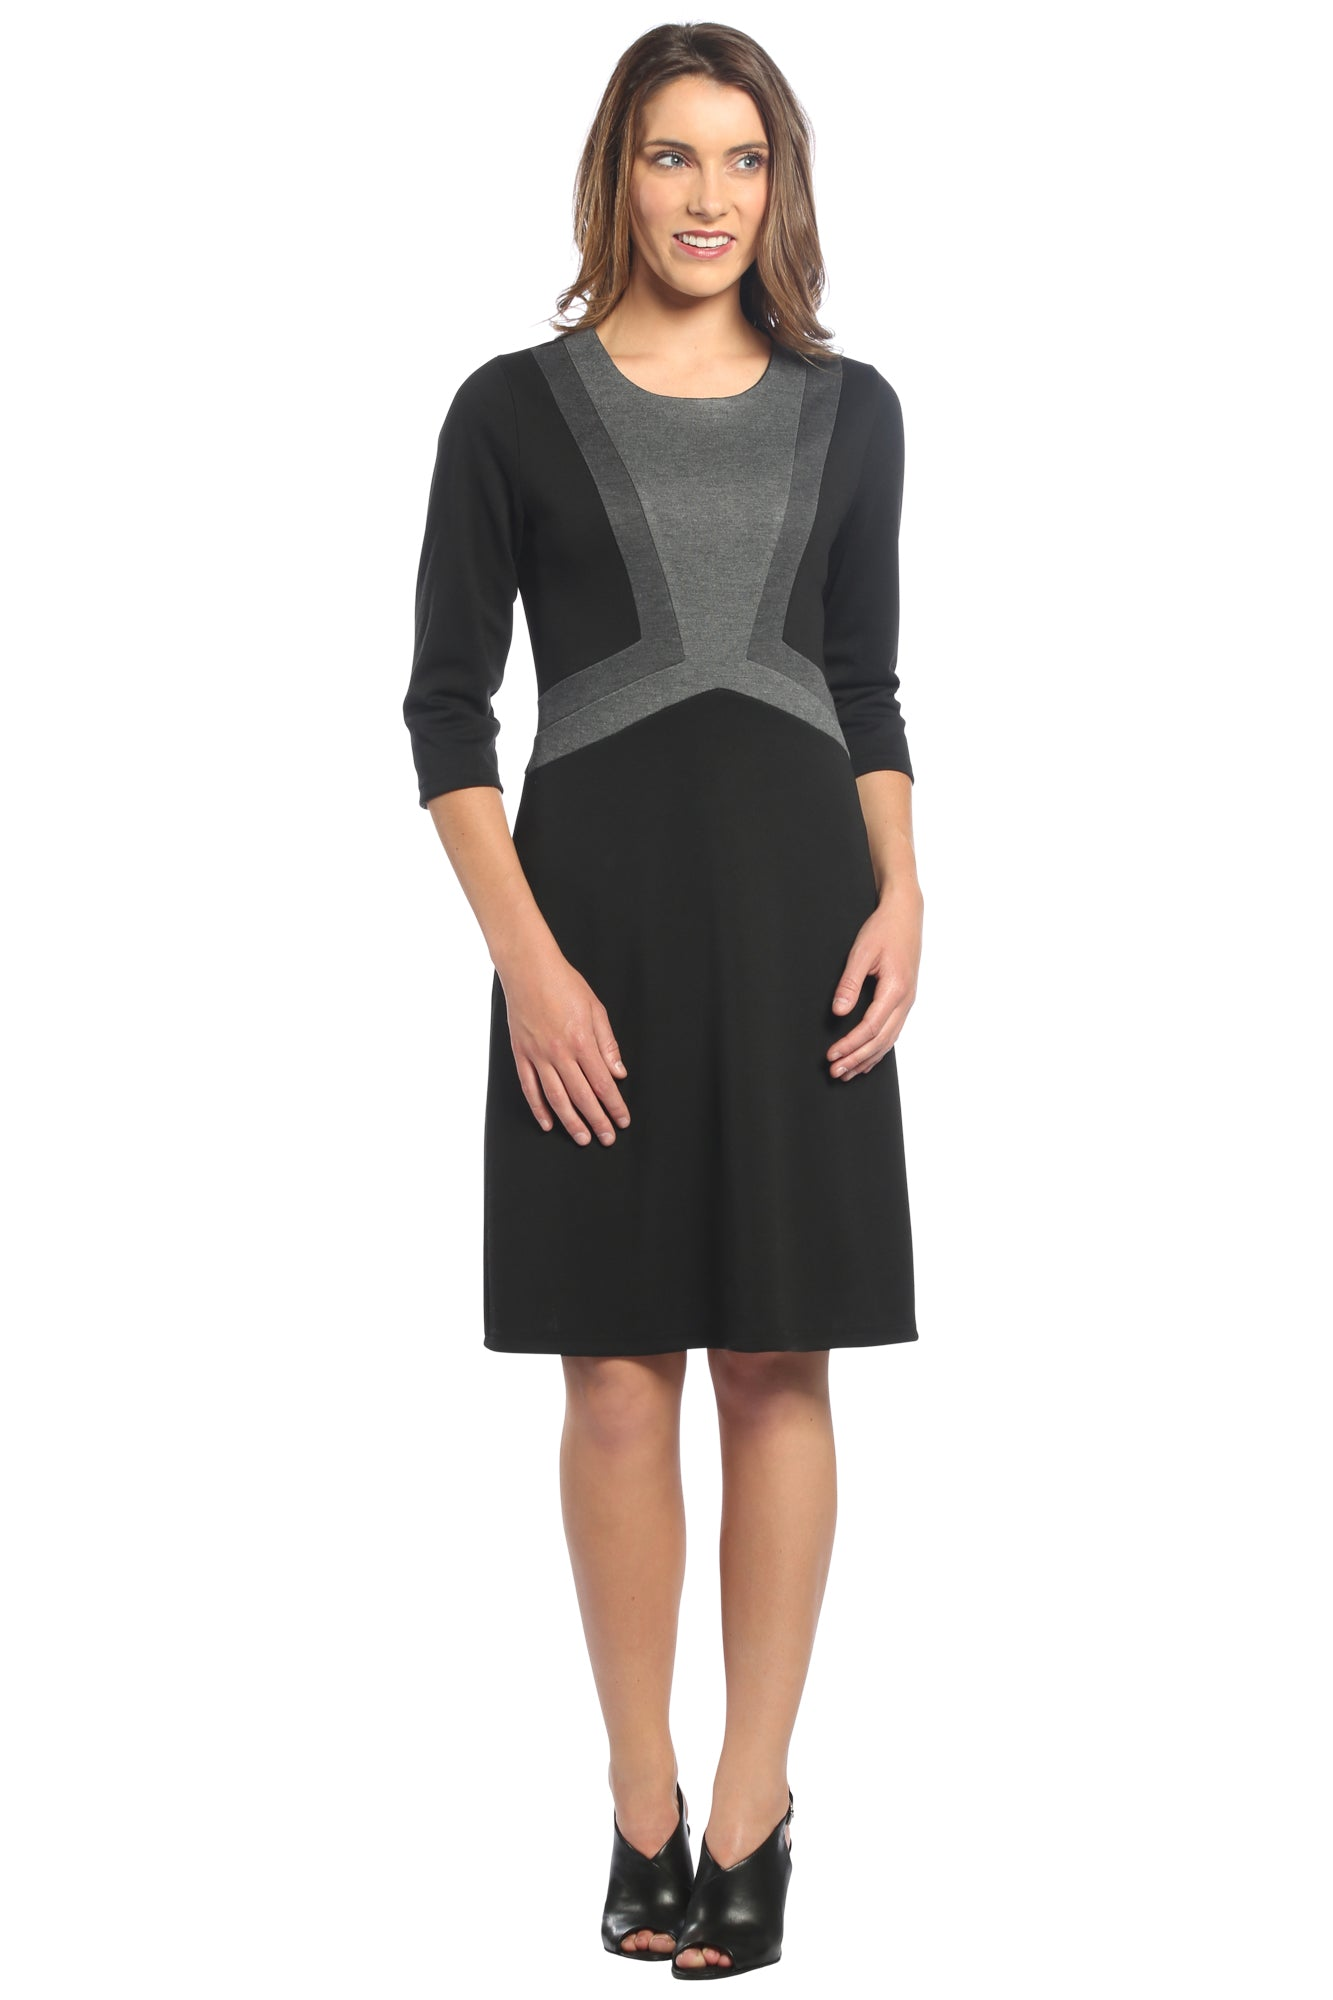 Color Block A-Line Dress in Black/Charcoal